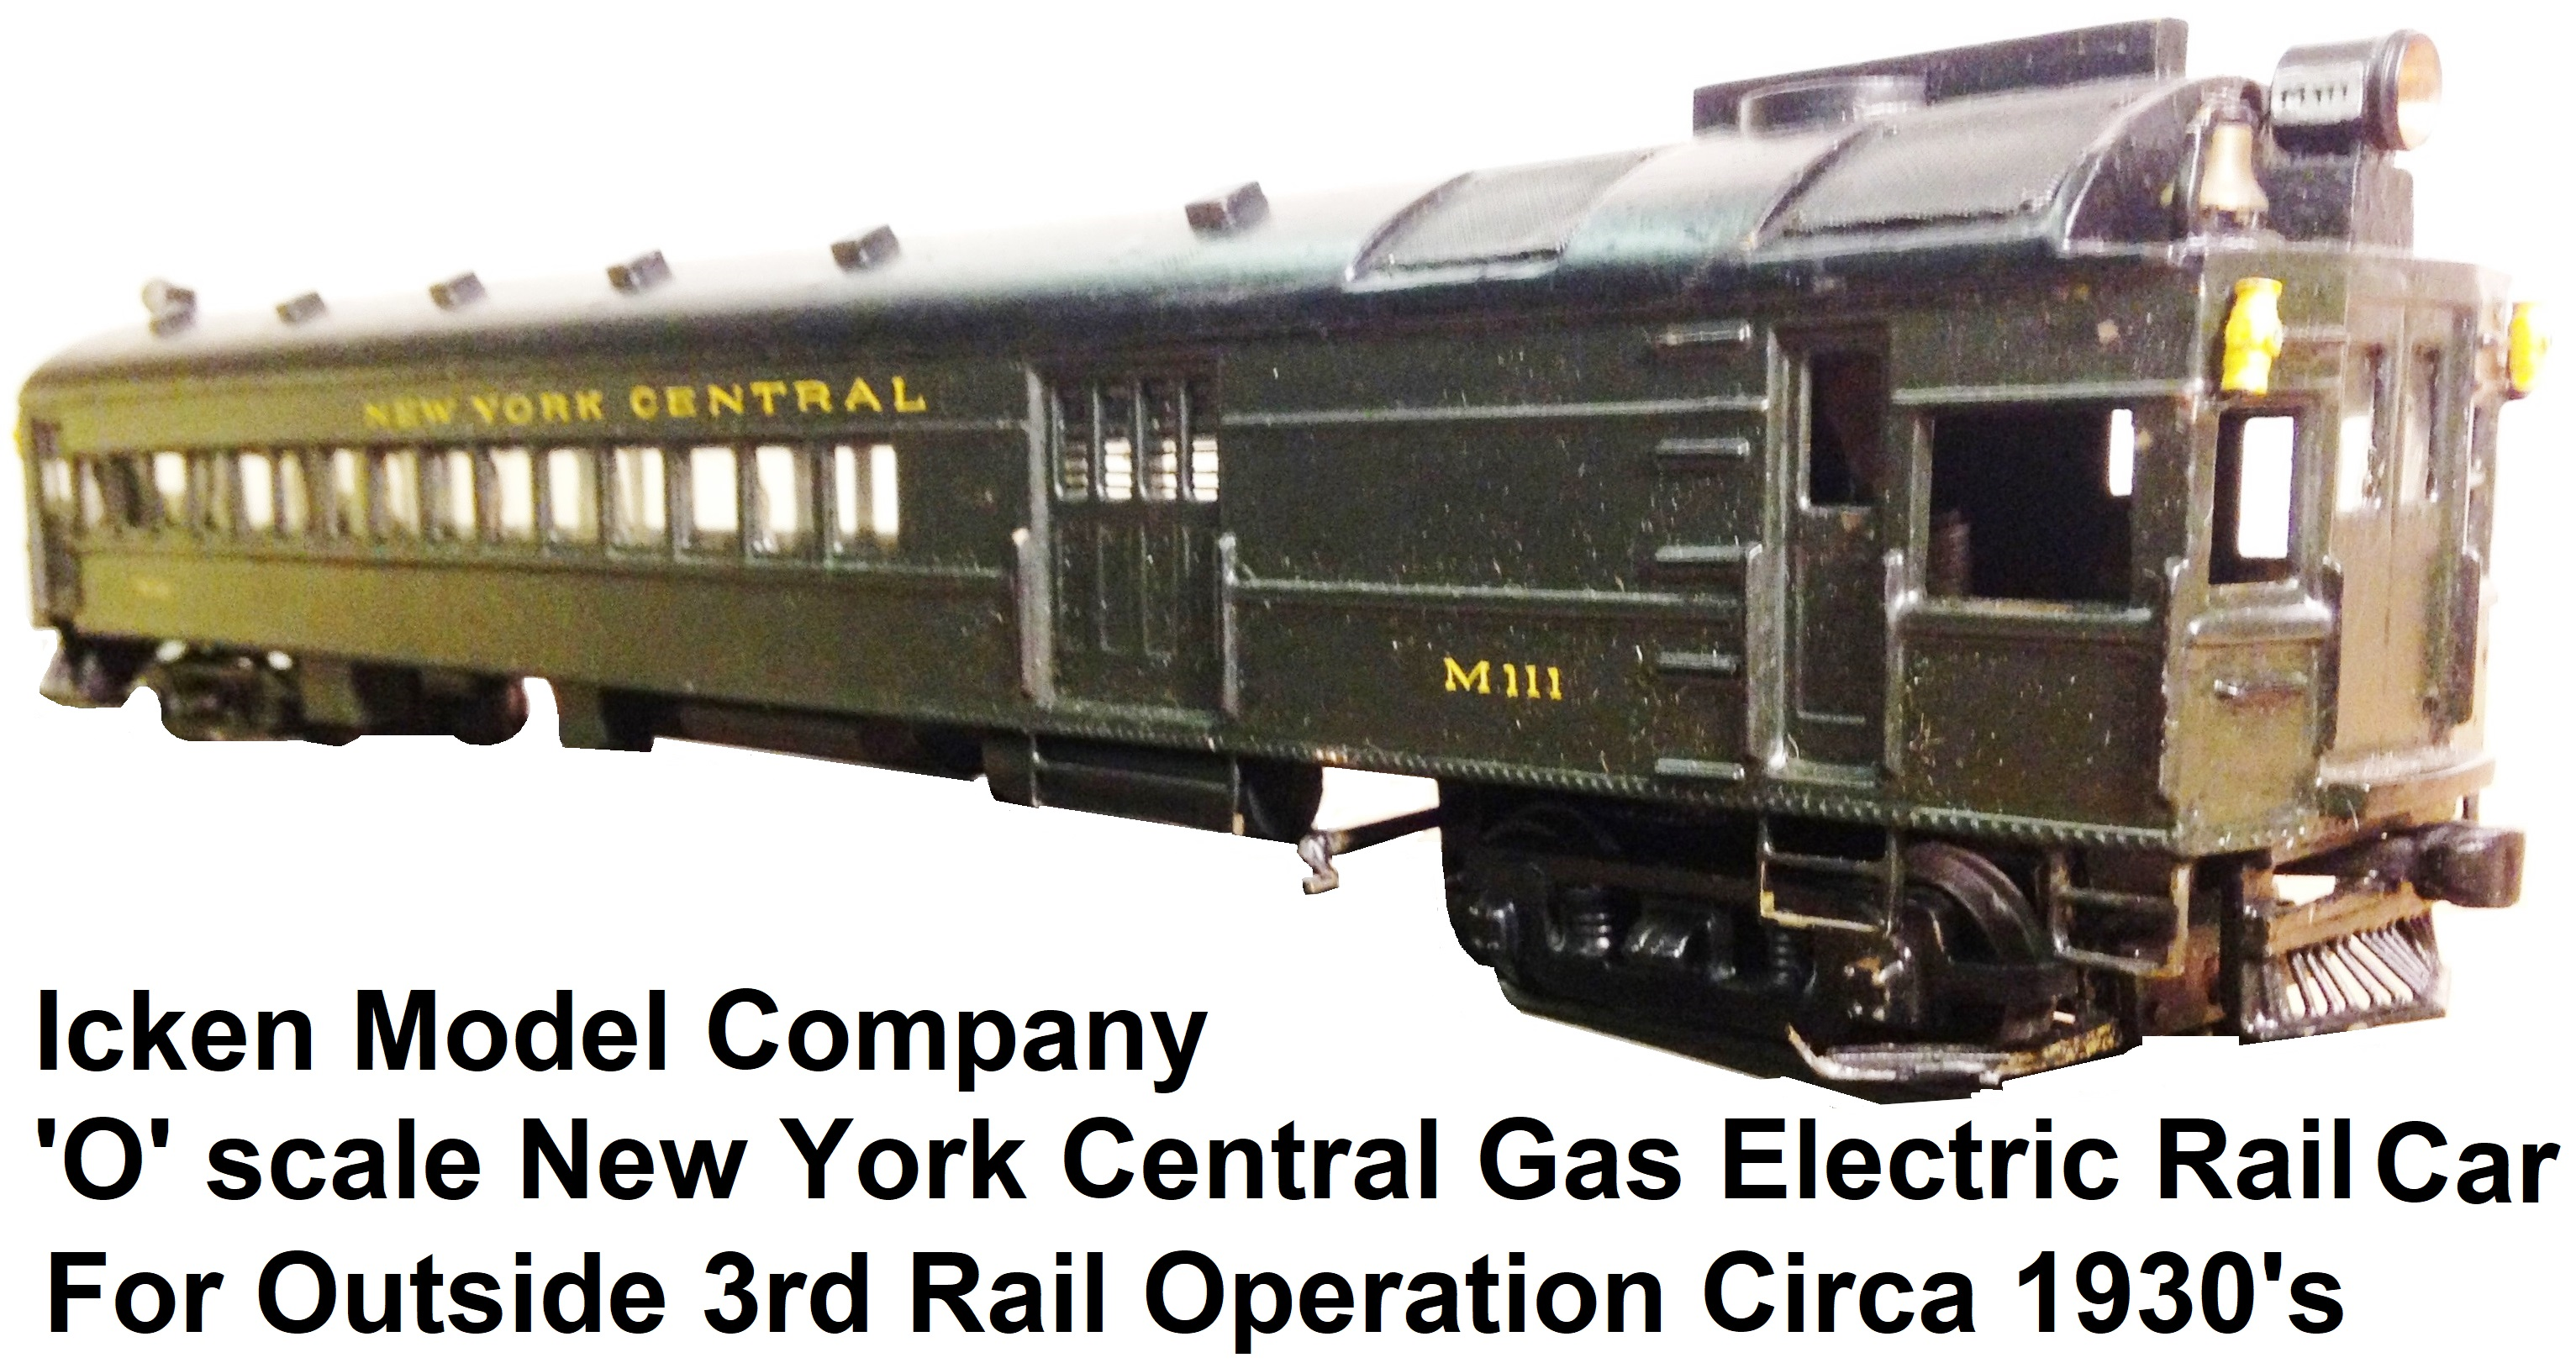 Icken Model Company 'O' scale 1930's Standard Gas Electric Car in New York Central livery for outside 3rd rail